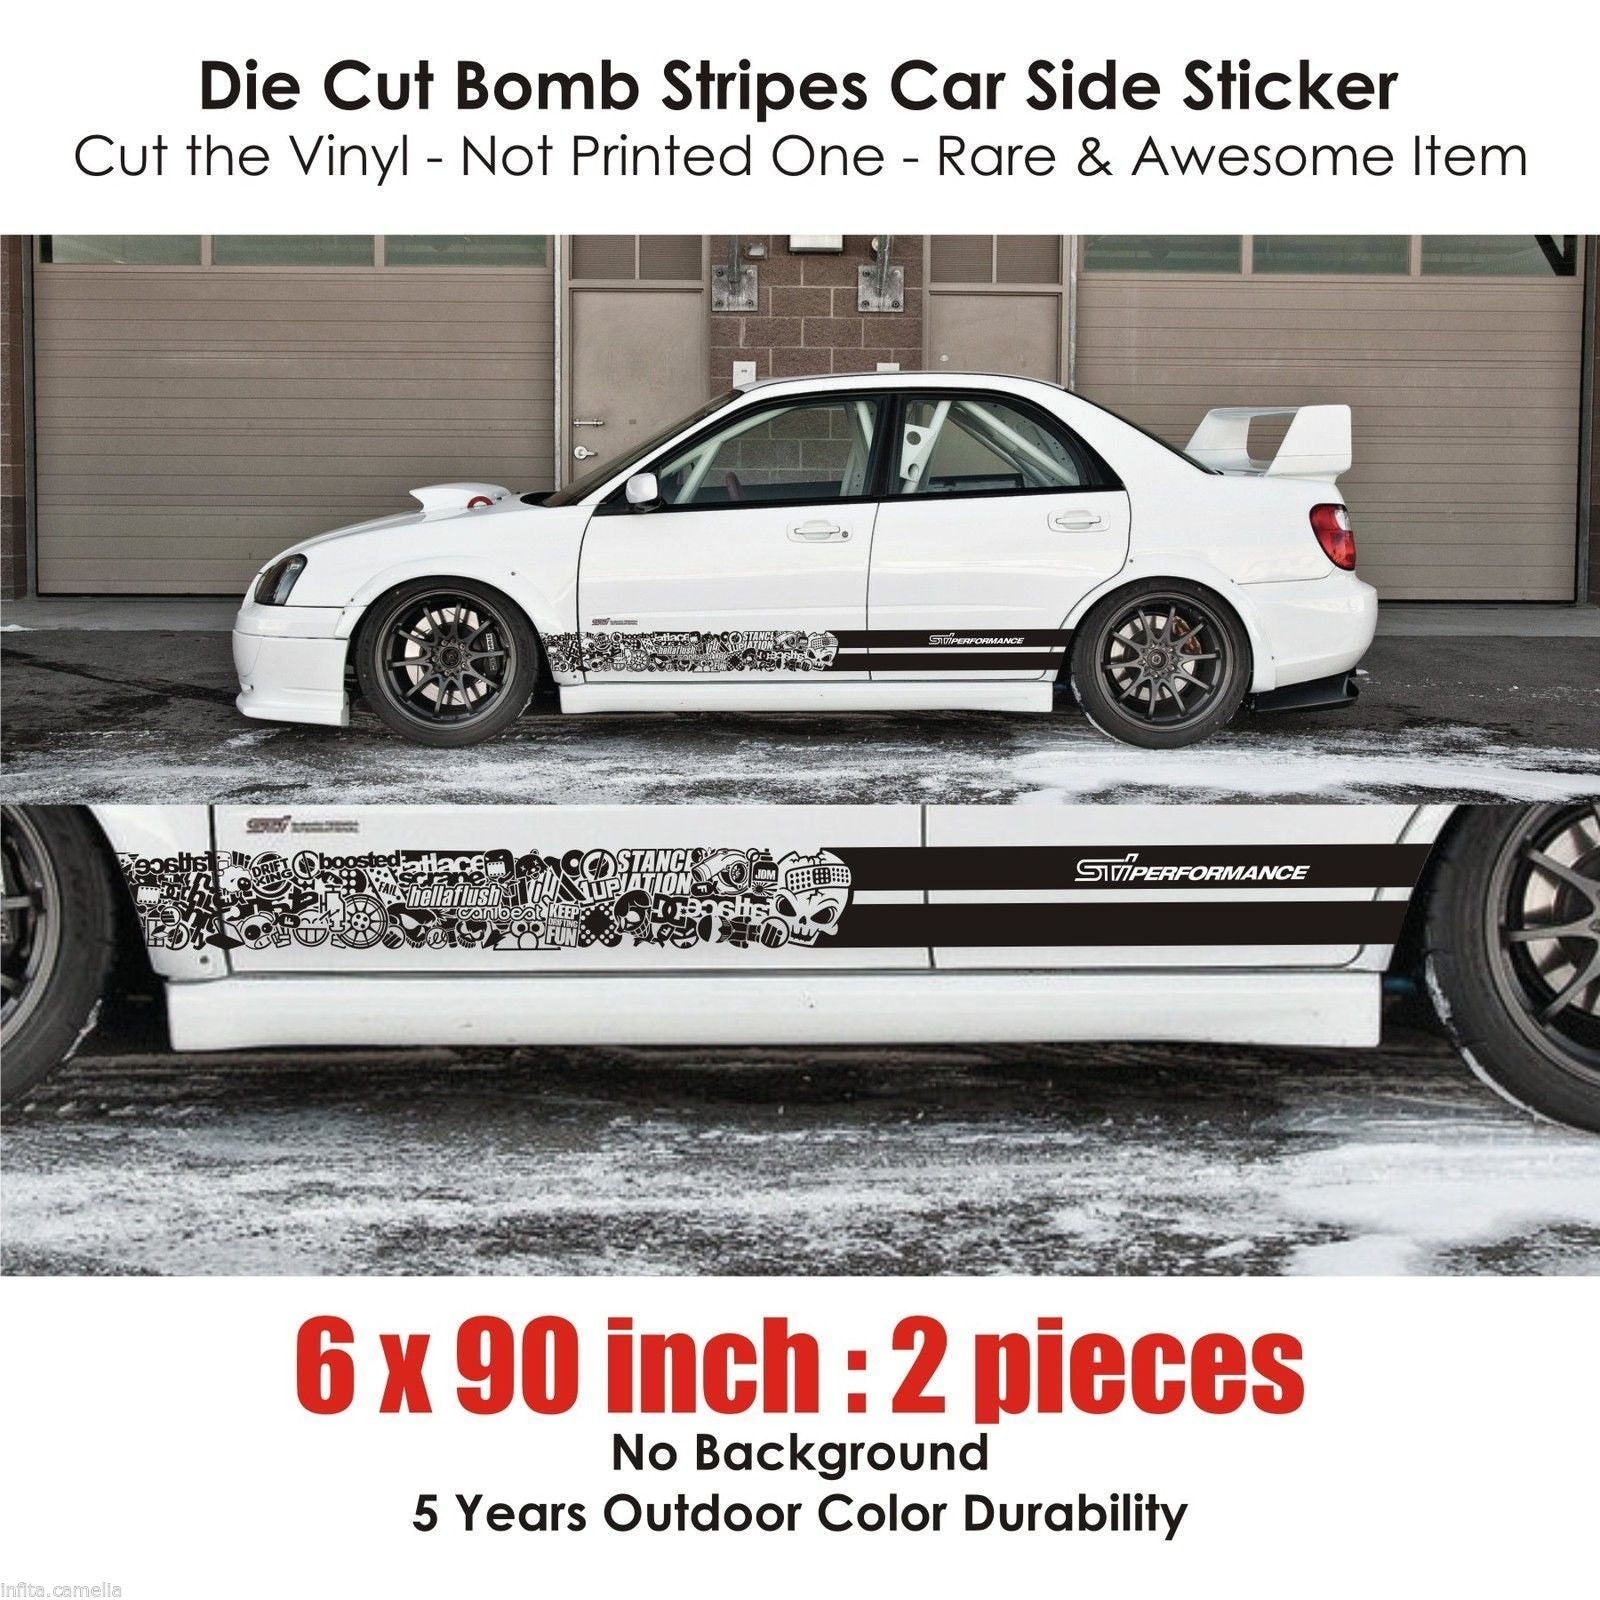 BSK 002 Subaru STI Performance bomb stickers stripes racing jdm japan turbo  drift - Infinity270 - 1.